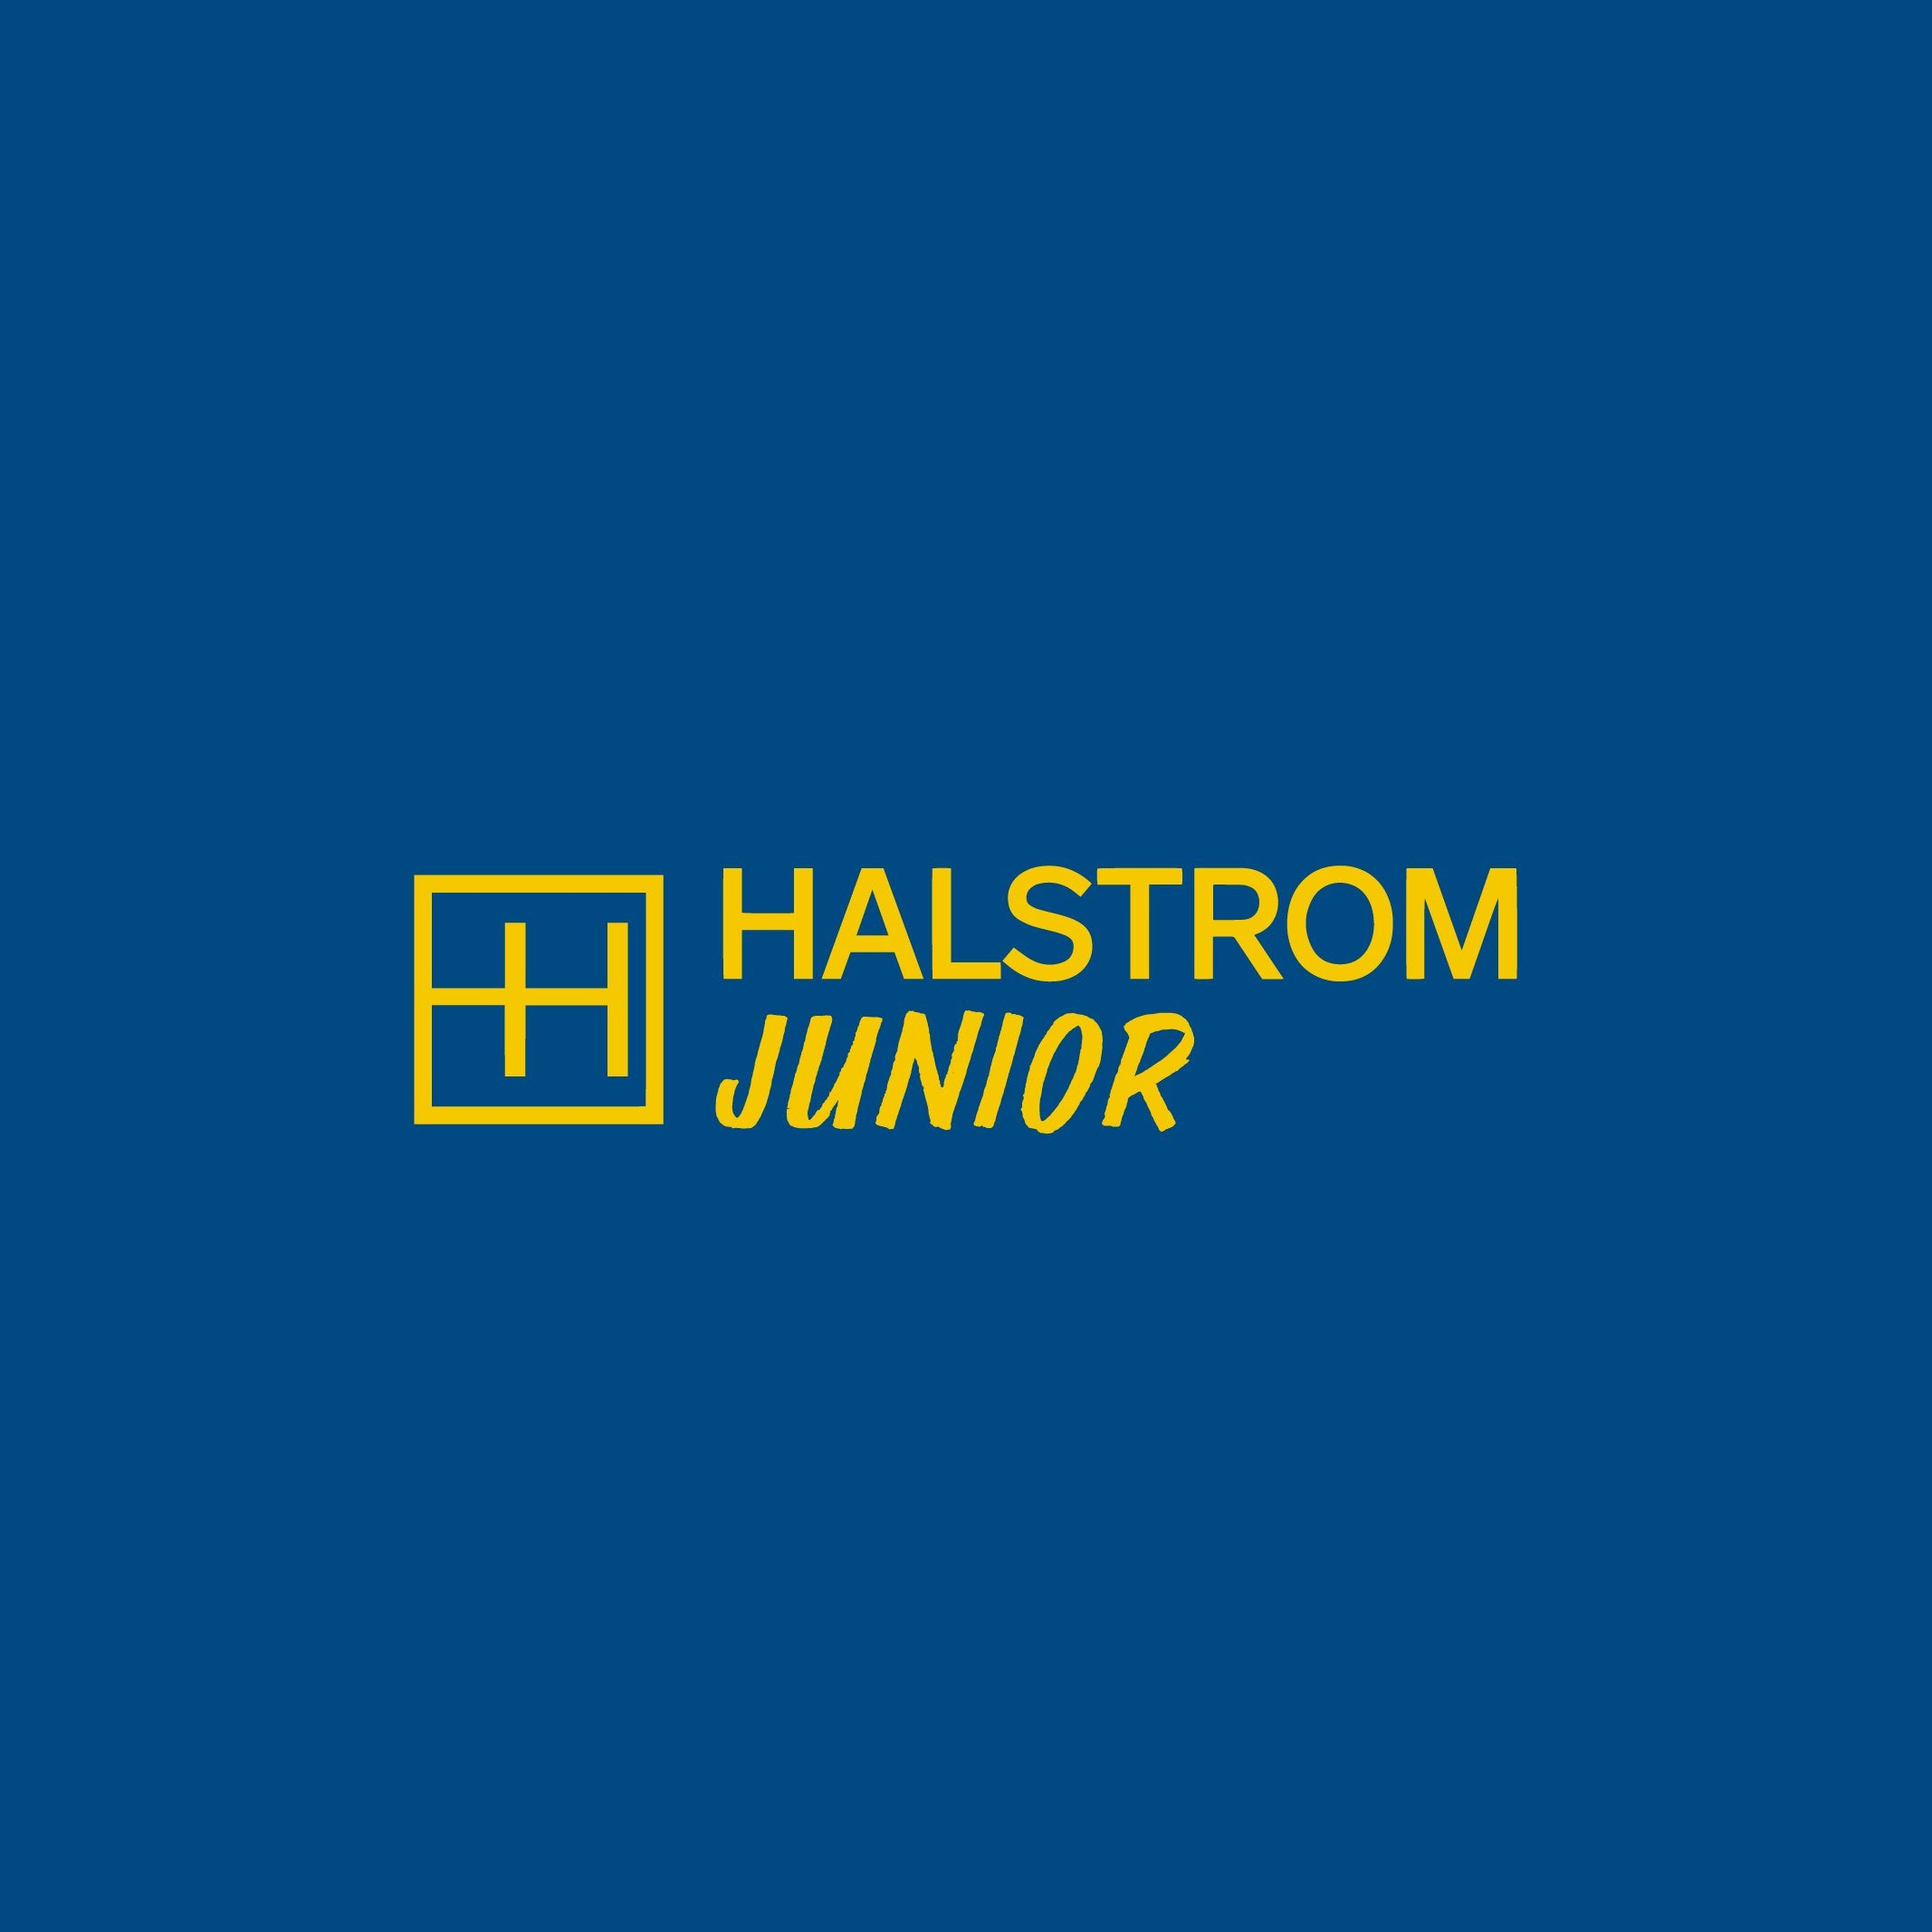 Halstrom Junior